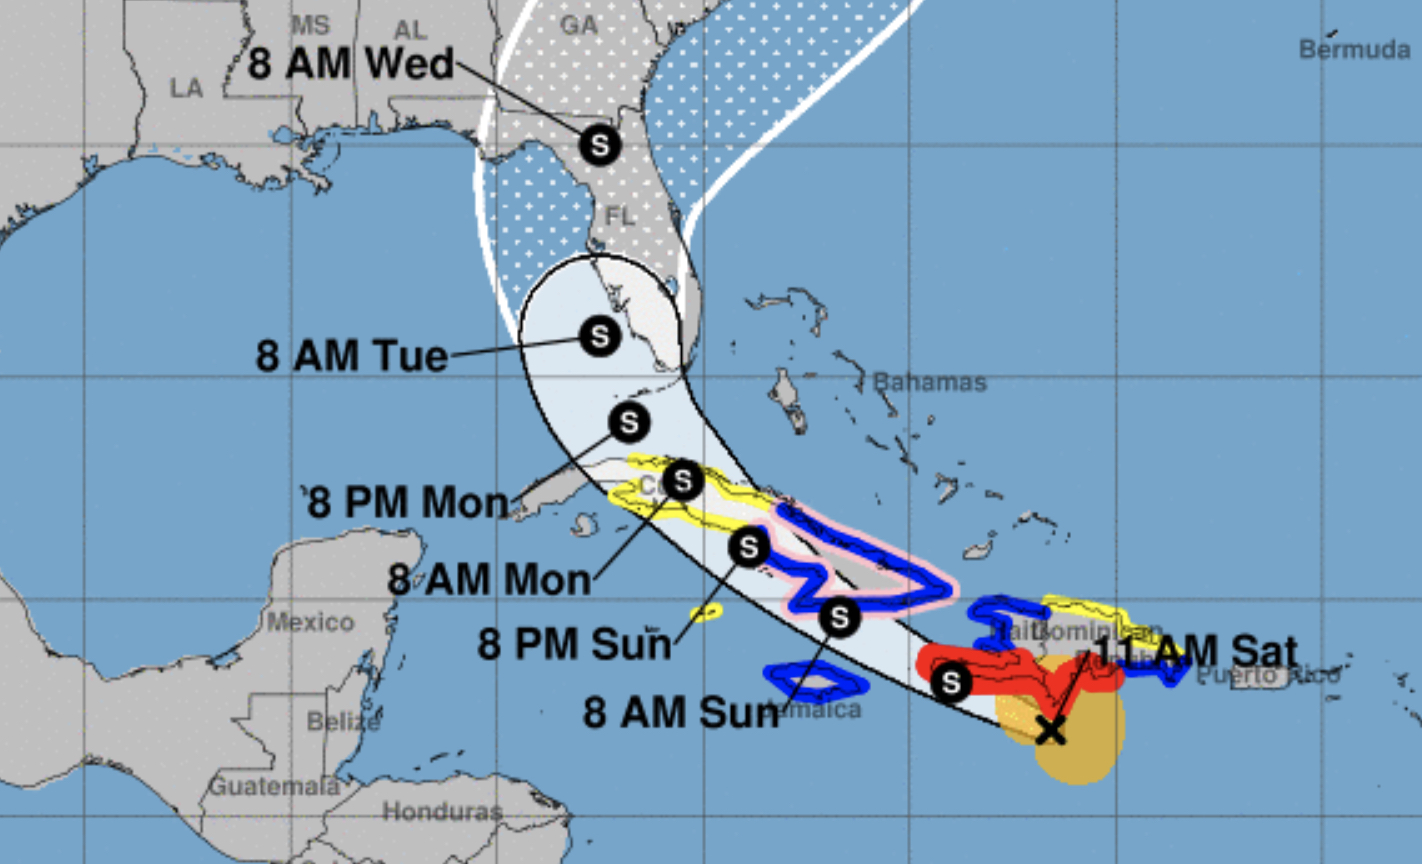 A screen shot from the National Hurricane Center map showing the potential storm track for Tropical Storm Elsa showing the Gulfport of Mexico and the Caribbean land masses with times of arrival for storm conditions.